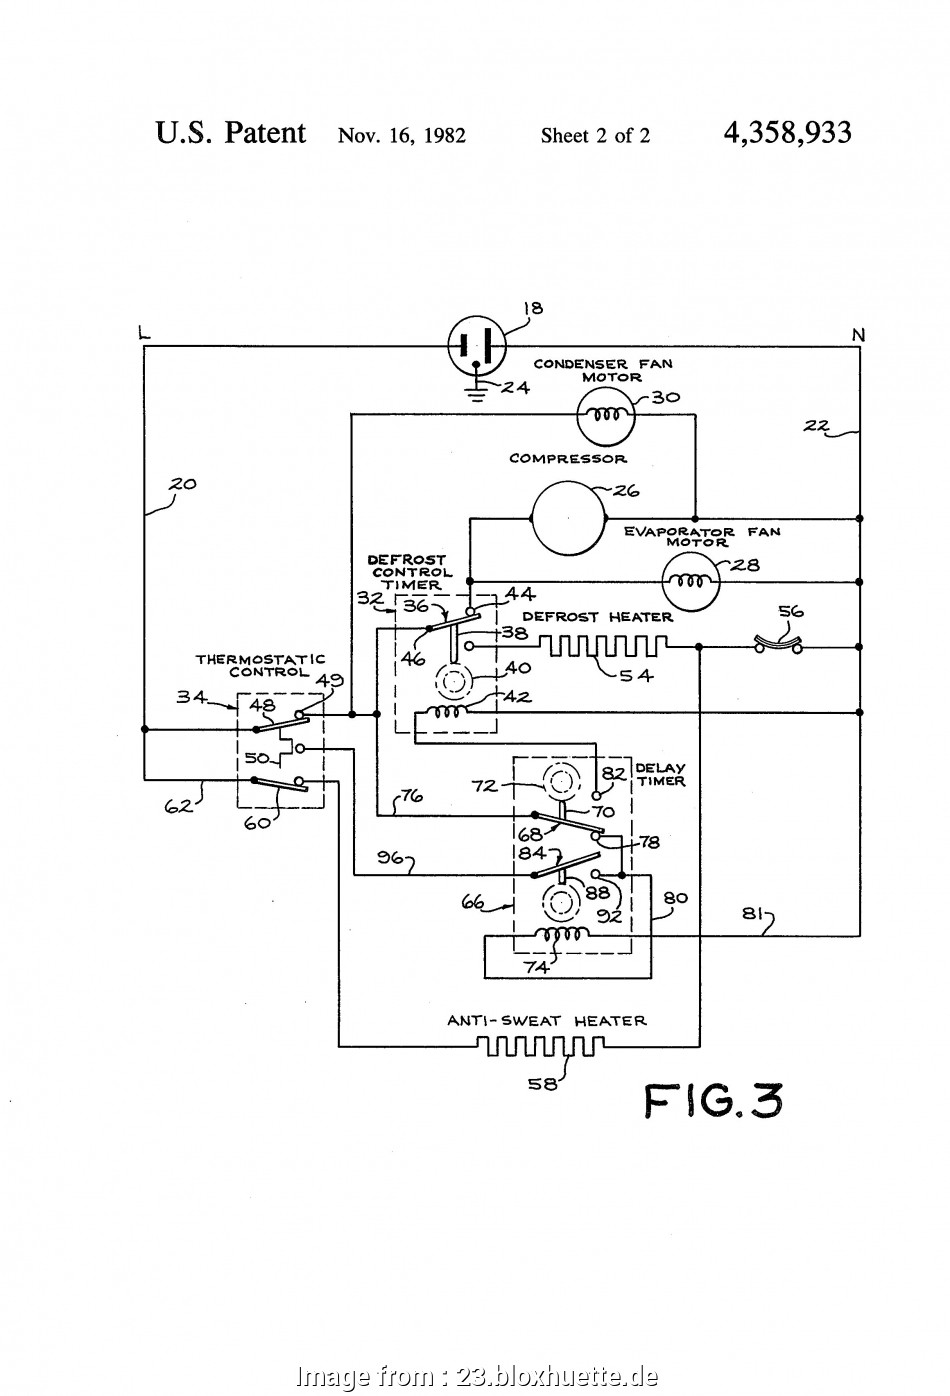 Defrost Thermostat Wiring Diagram Perfect Refrigerator